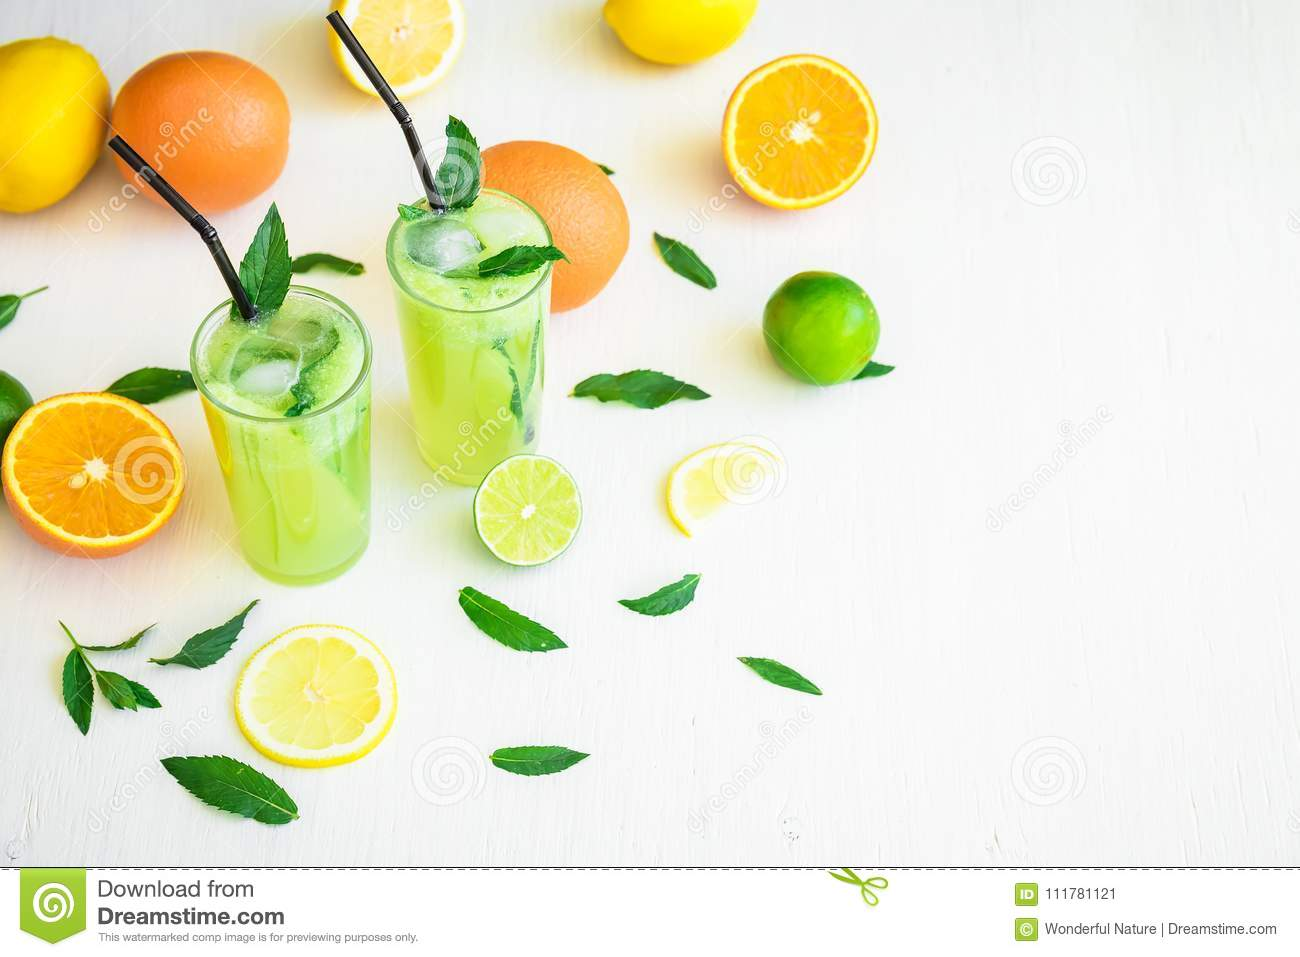 Summer fruit cocktail, refreshing drink with cucumber, limes and orange.